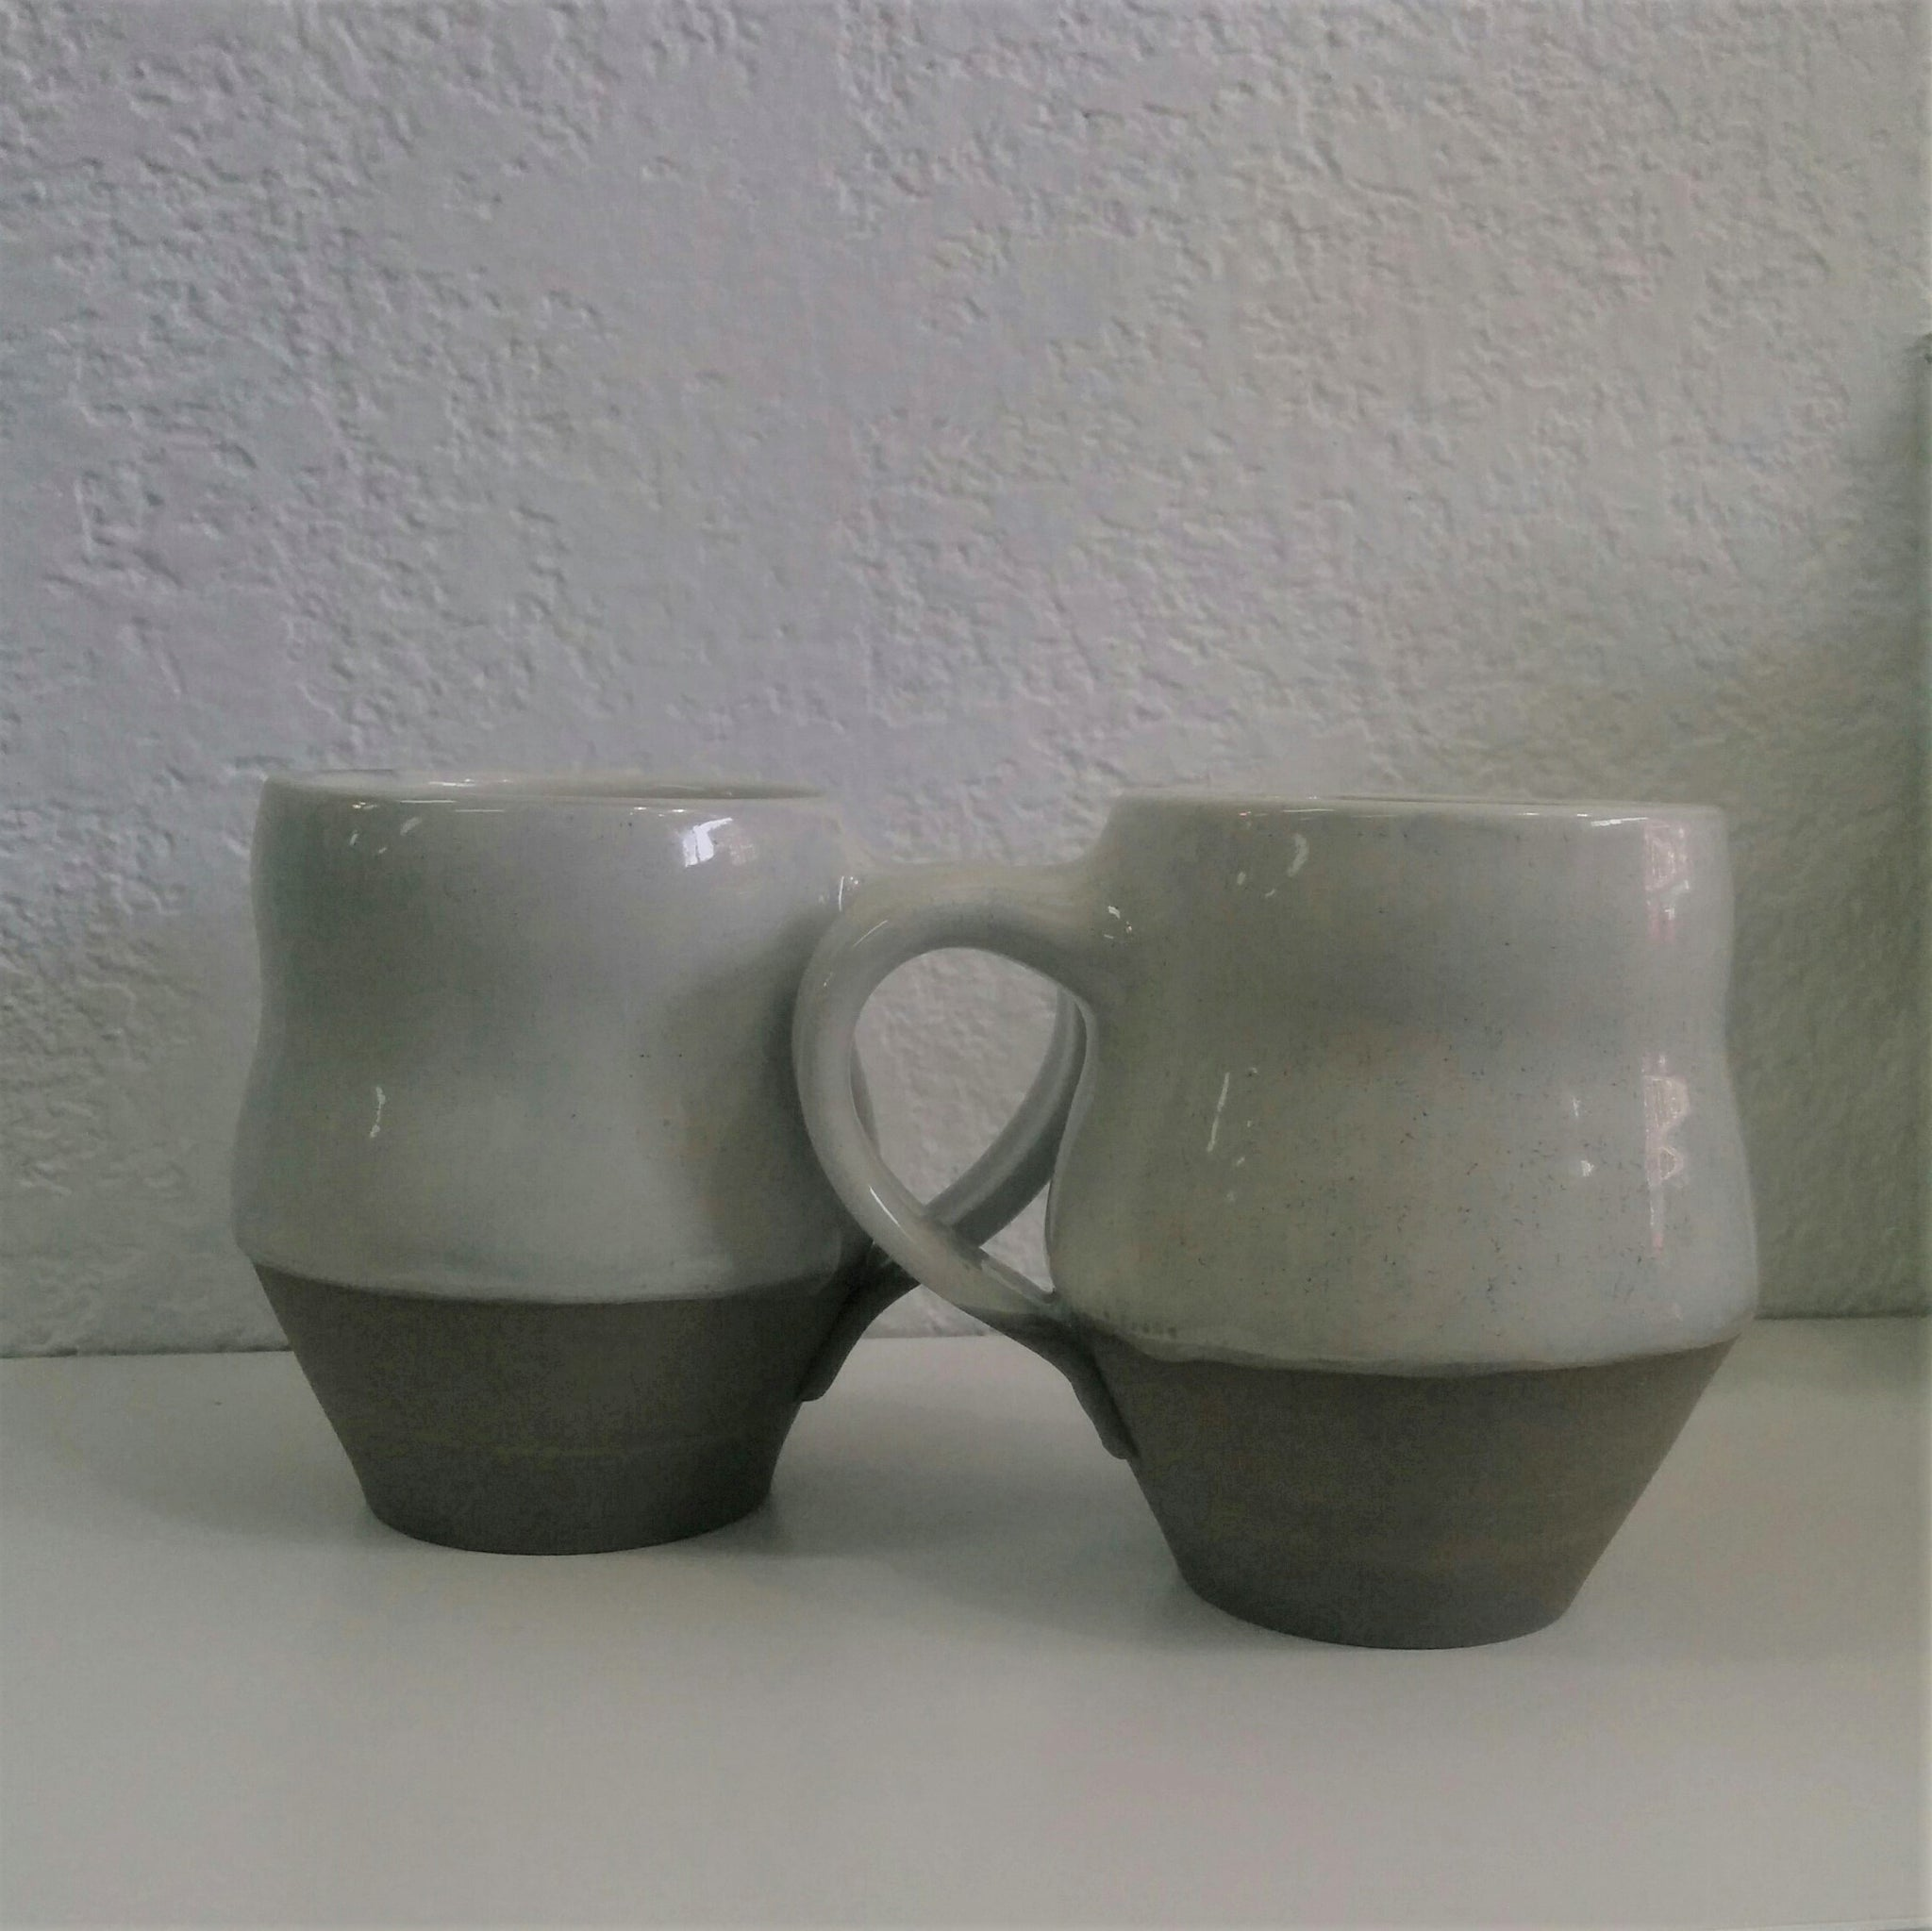 Pottery Mugs - Set of Two, grey and white